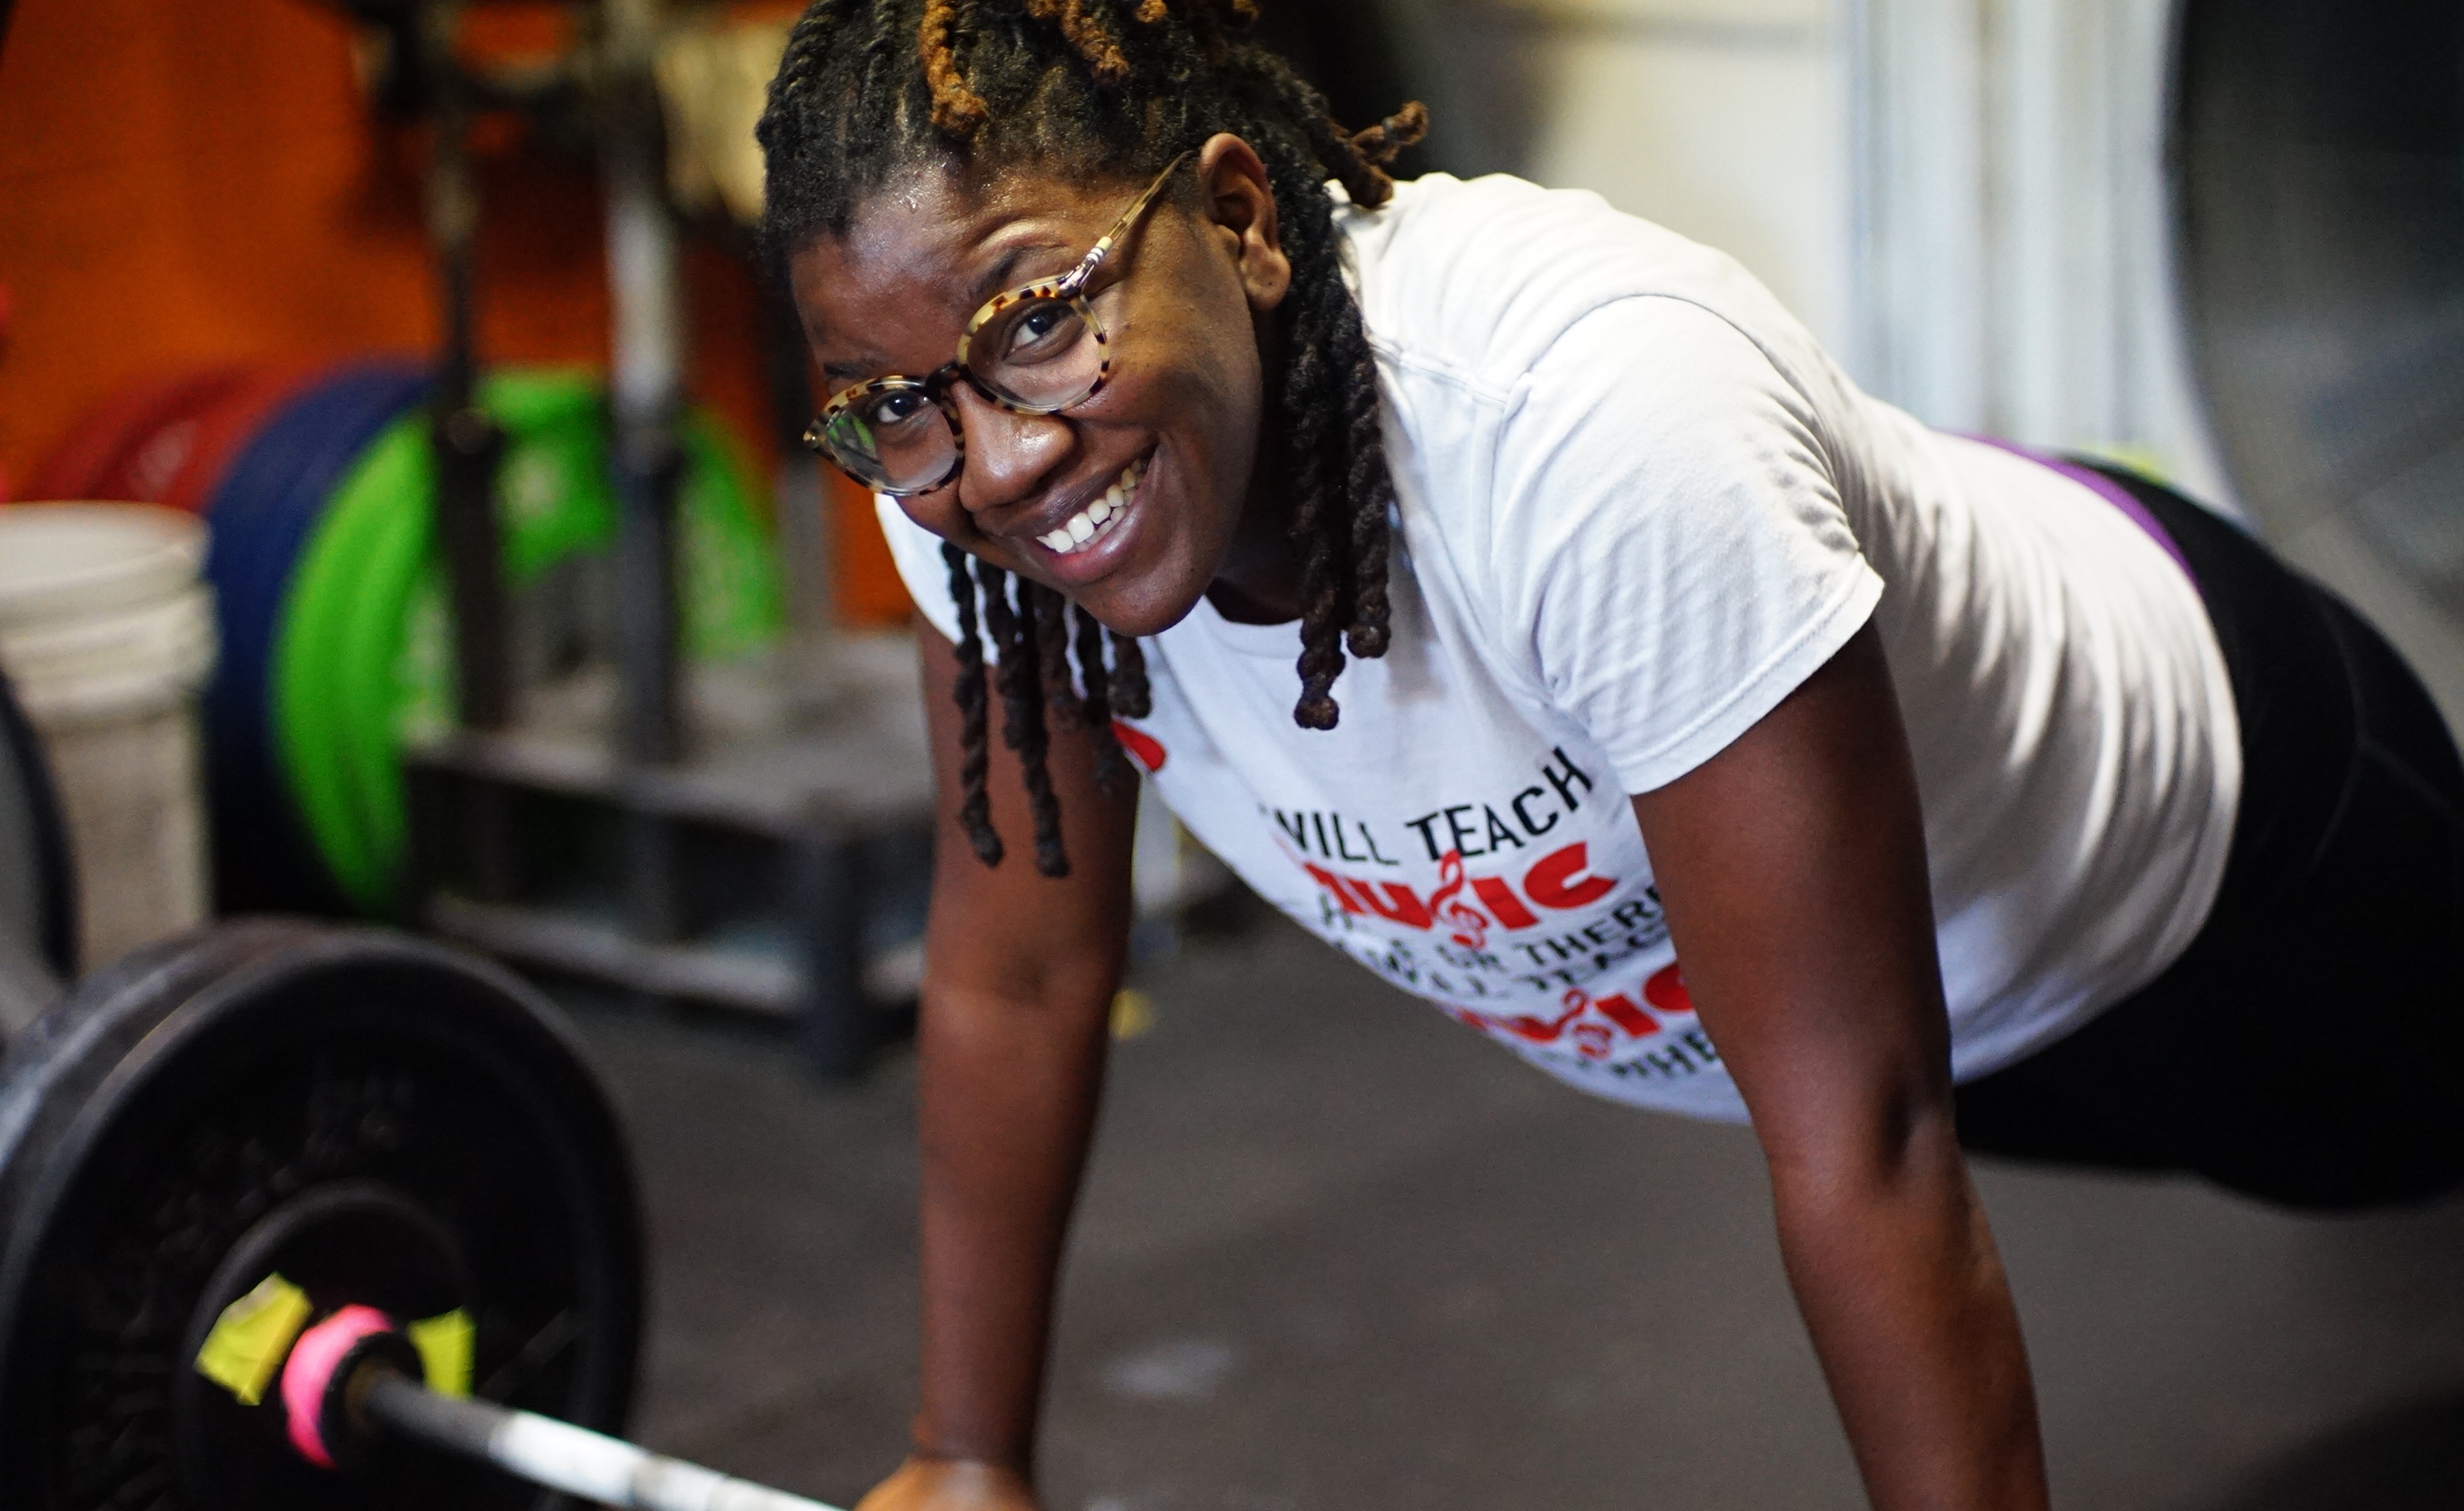 find personal trainer near me belle meade - Athlete of the Month: Jackie Hanna